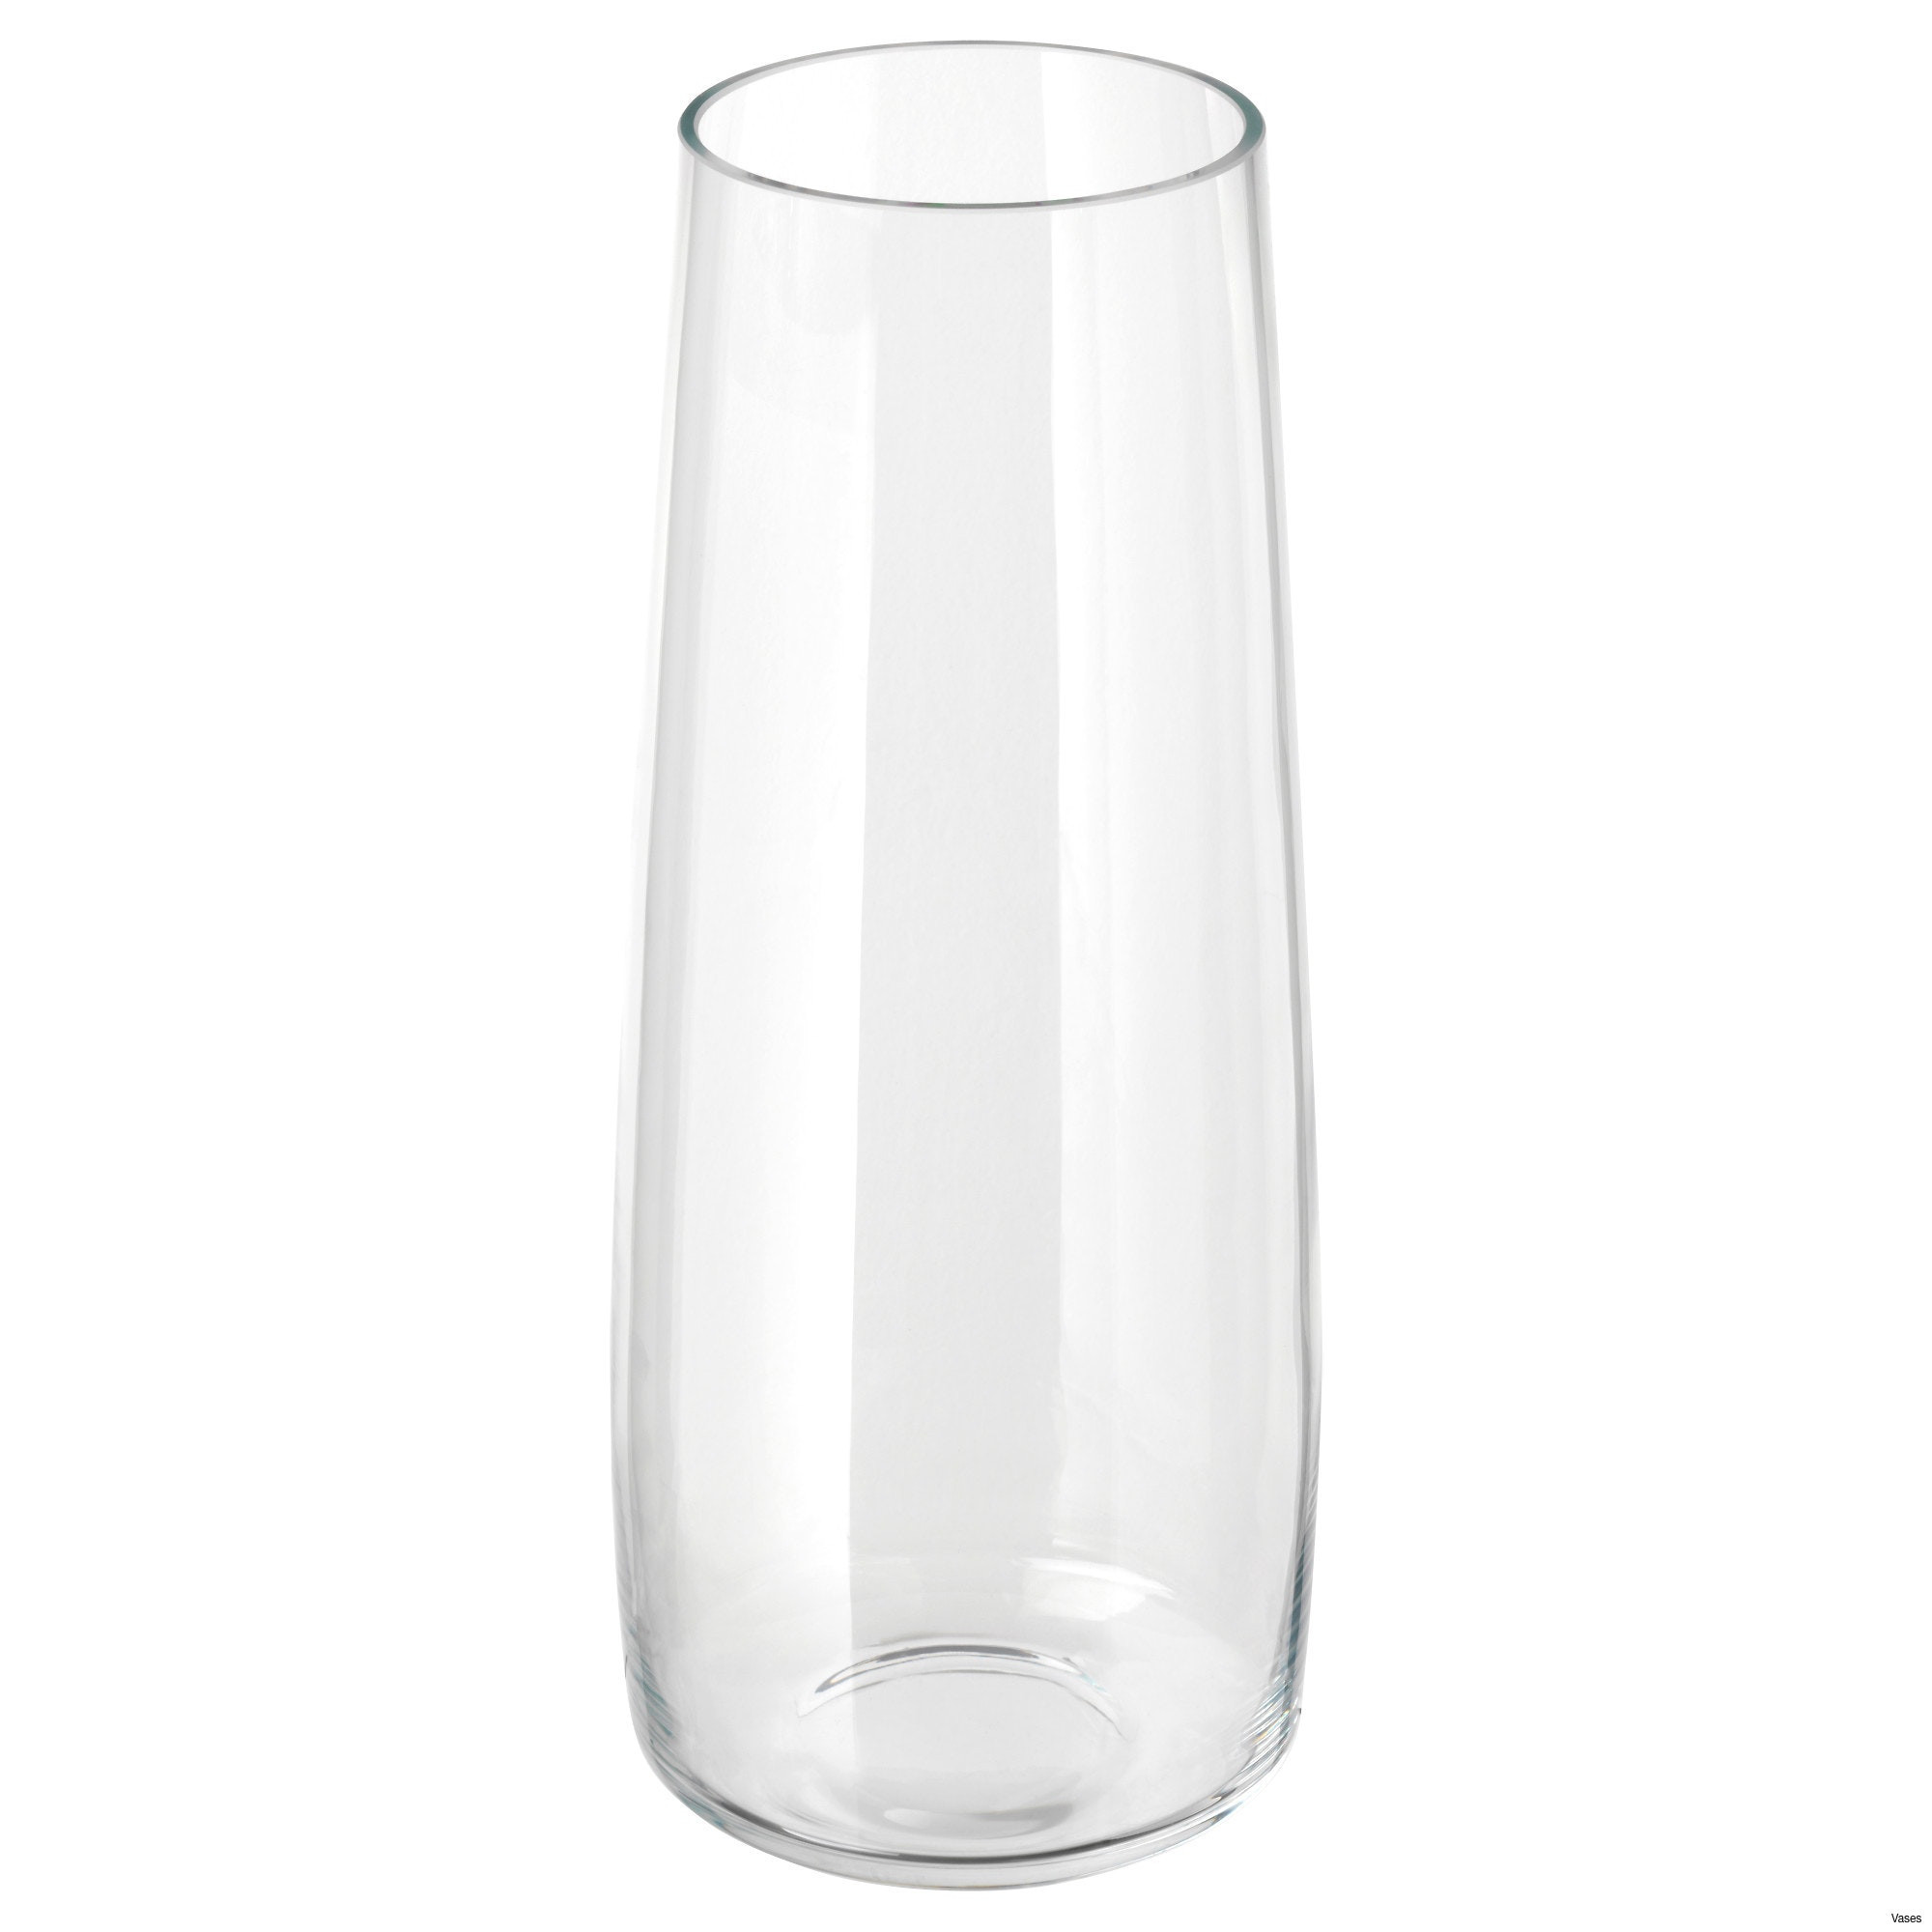 5 inch square glass vases of large glass vases pictures clear glass planters fresh clear glass regarding clear glass planters fresh clear glass vases